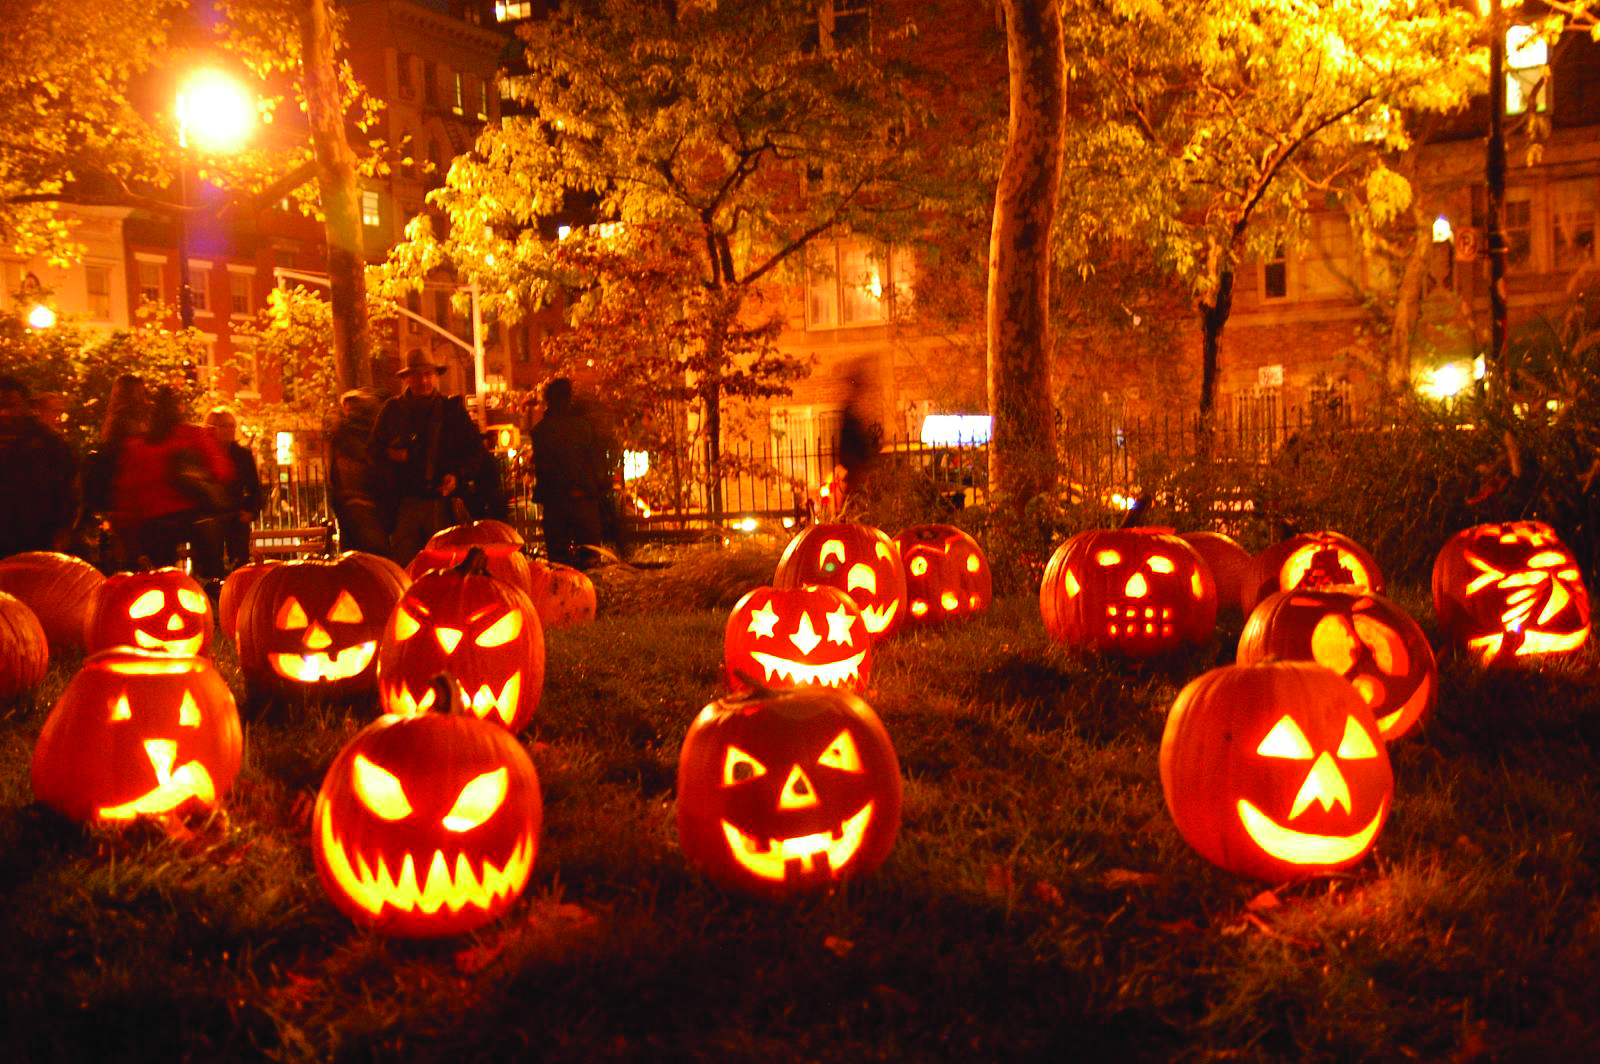 Halloween Party Friday Oct. 23rd @Skyline CrossFit. Everything starts after 5:30 class ends. Pumpkin carving, Food, Beer, and Games. What more can you ask for?